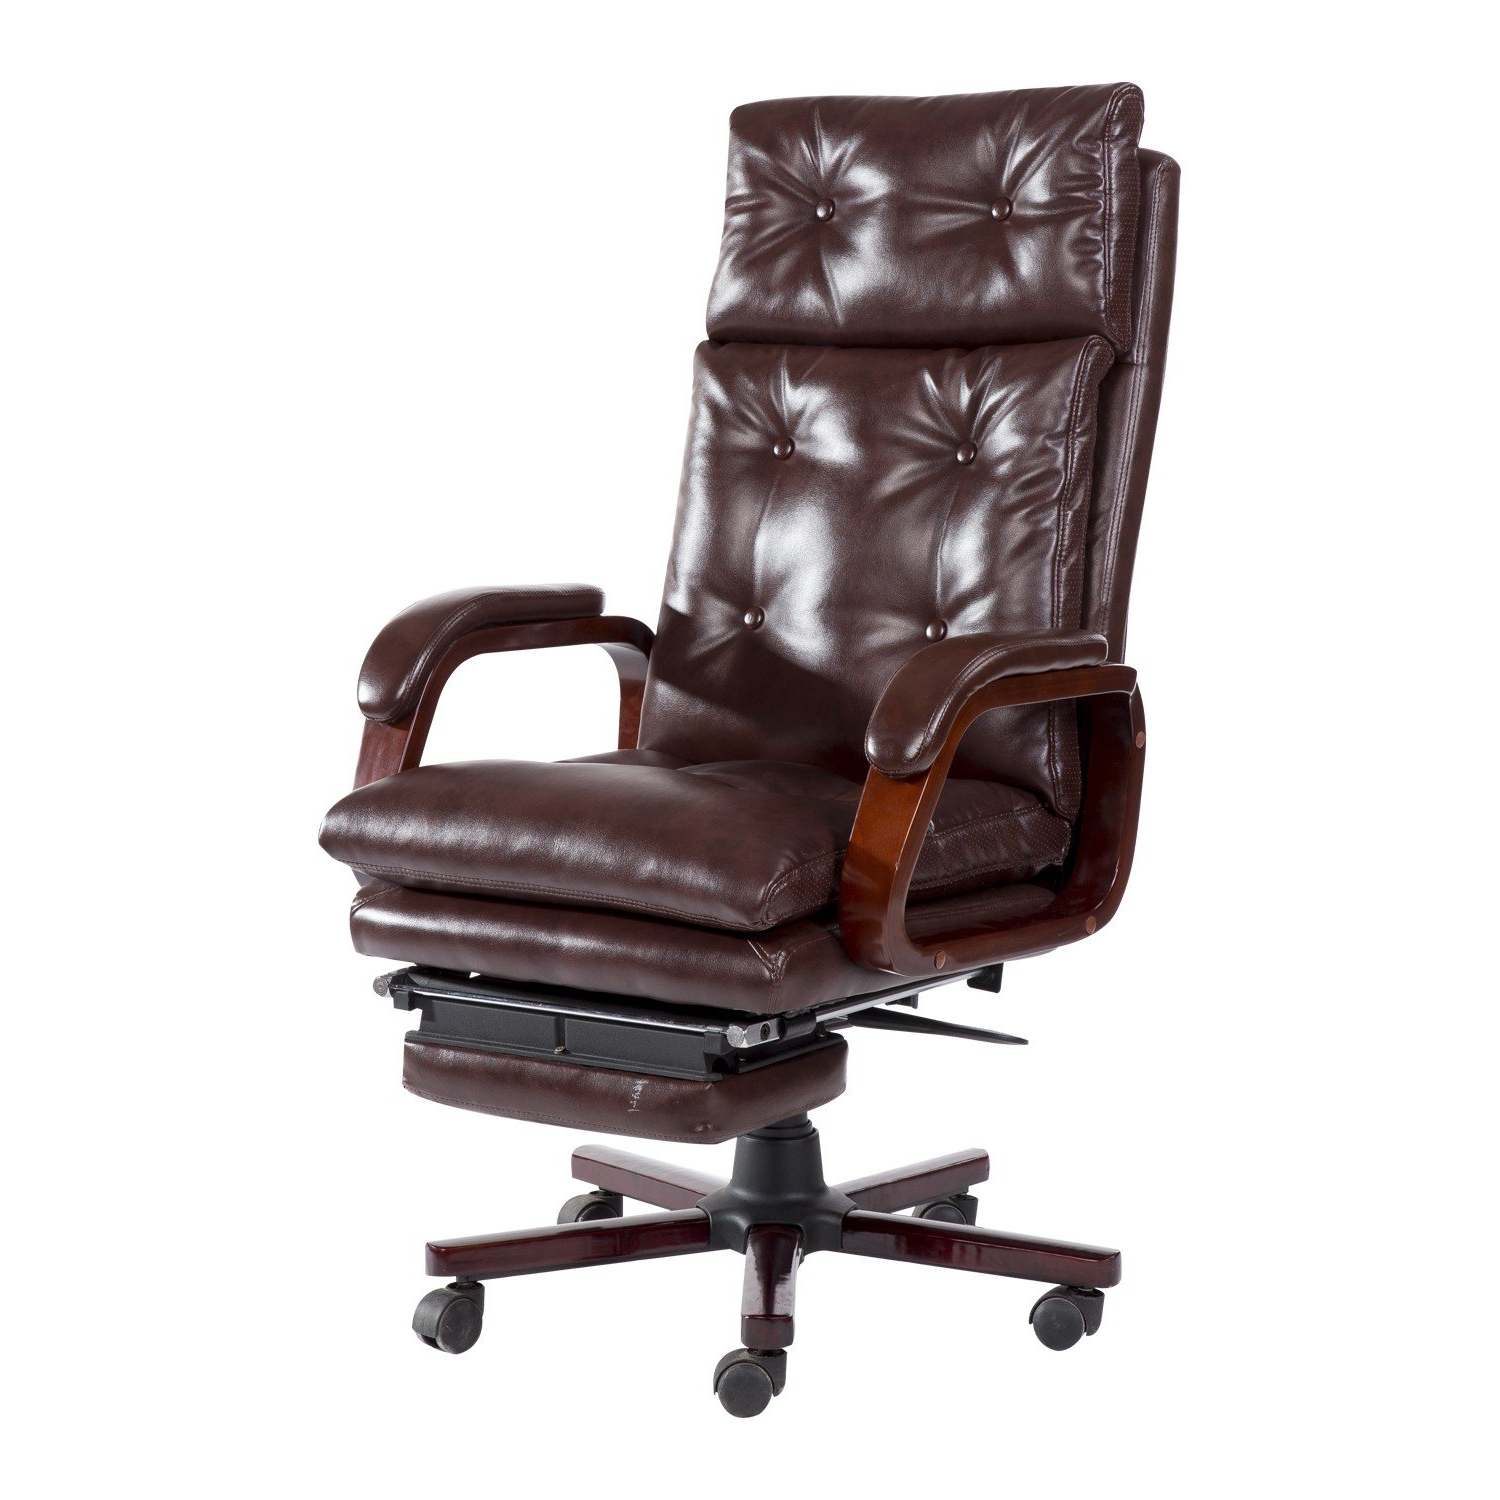 Executive Office Chairs With Leg Rest In Trendy Homcom High Back Pu Leather Executive Reclining Office Chair With (View 7 of 20)